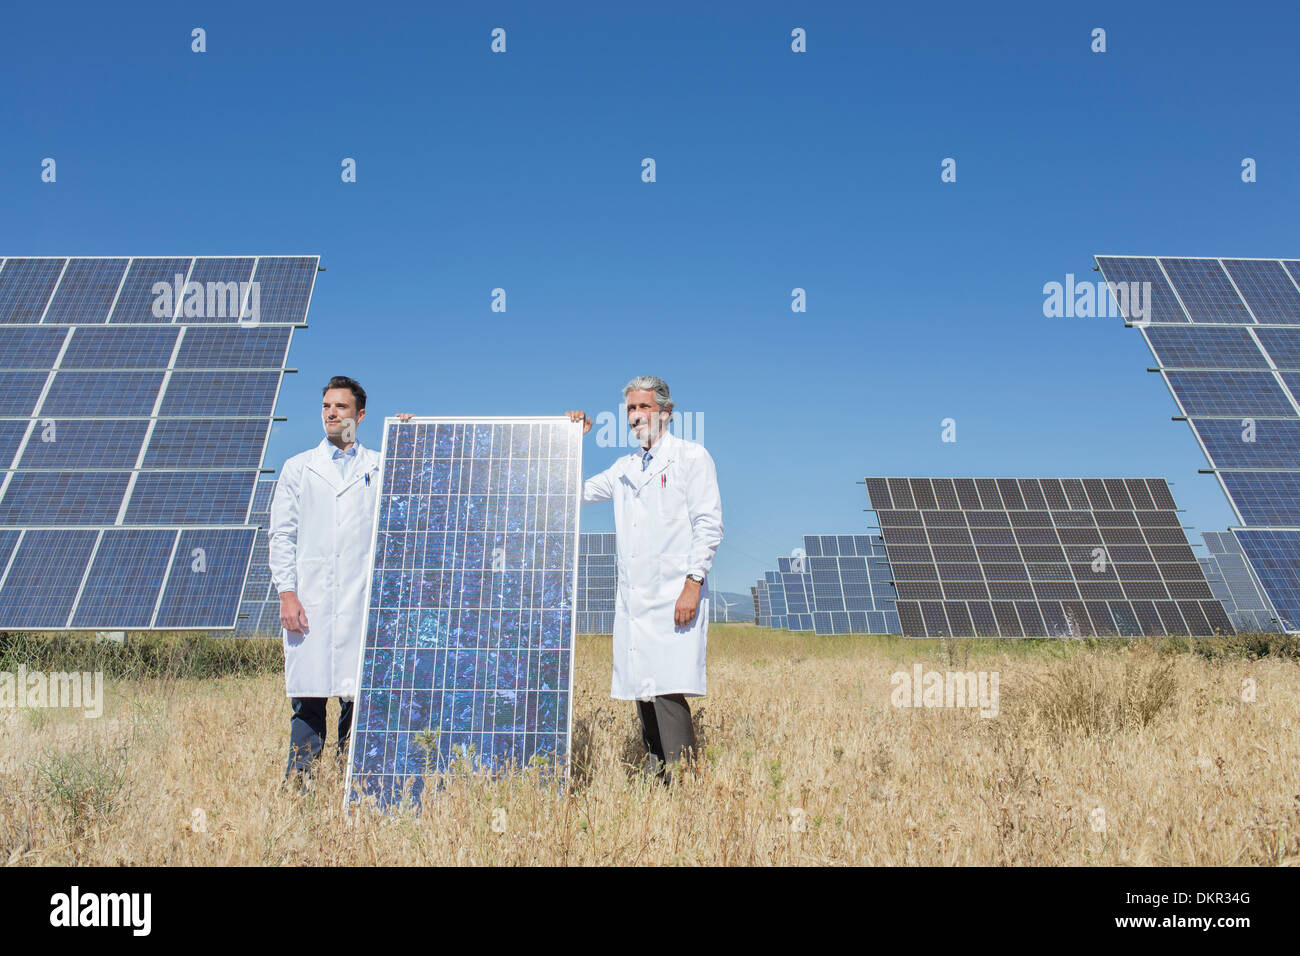 Scientists holding solar panel in rural landscape - Stock Image